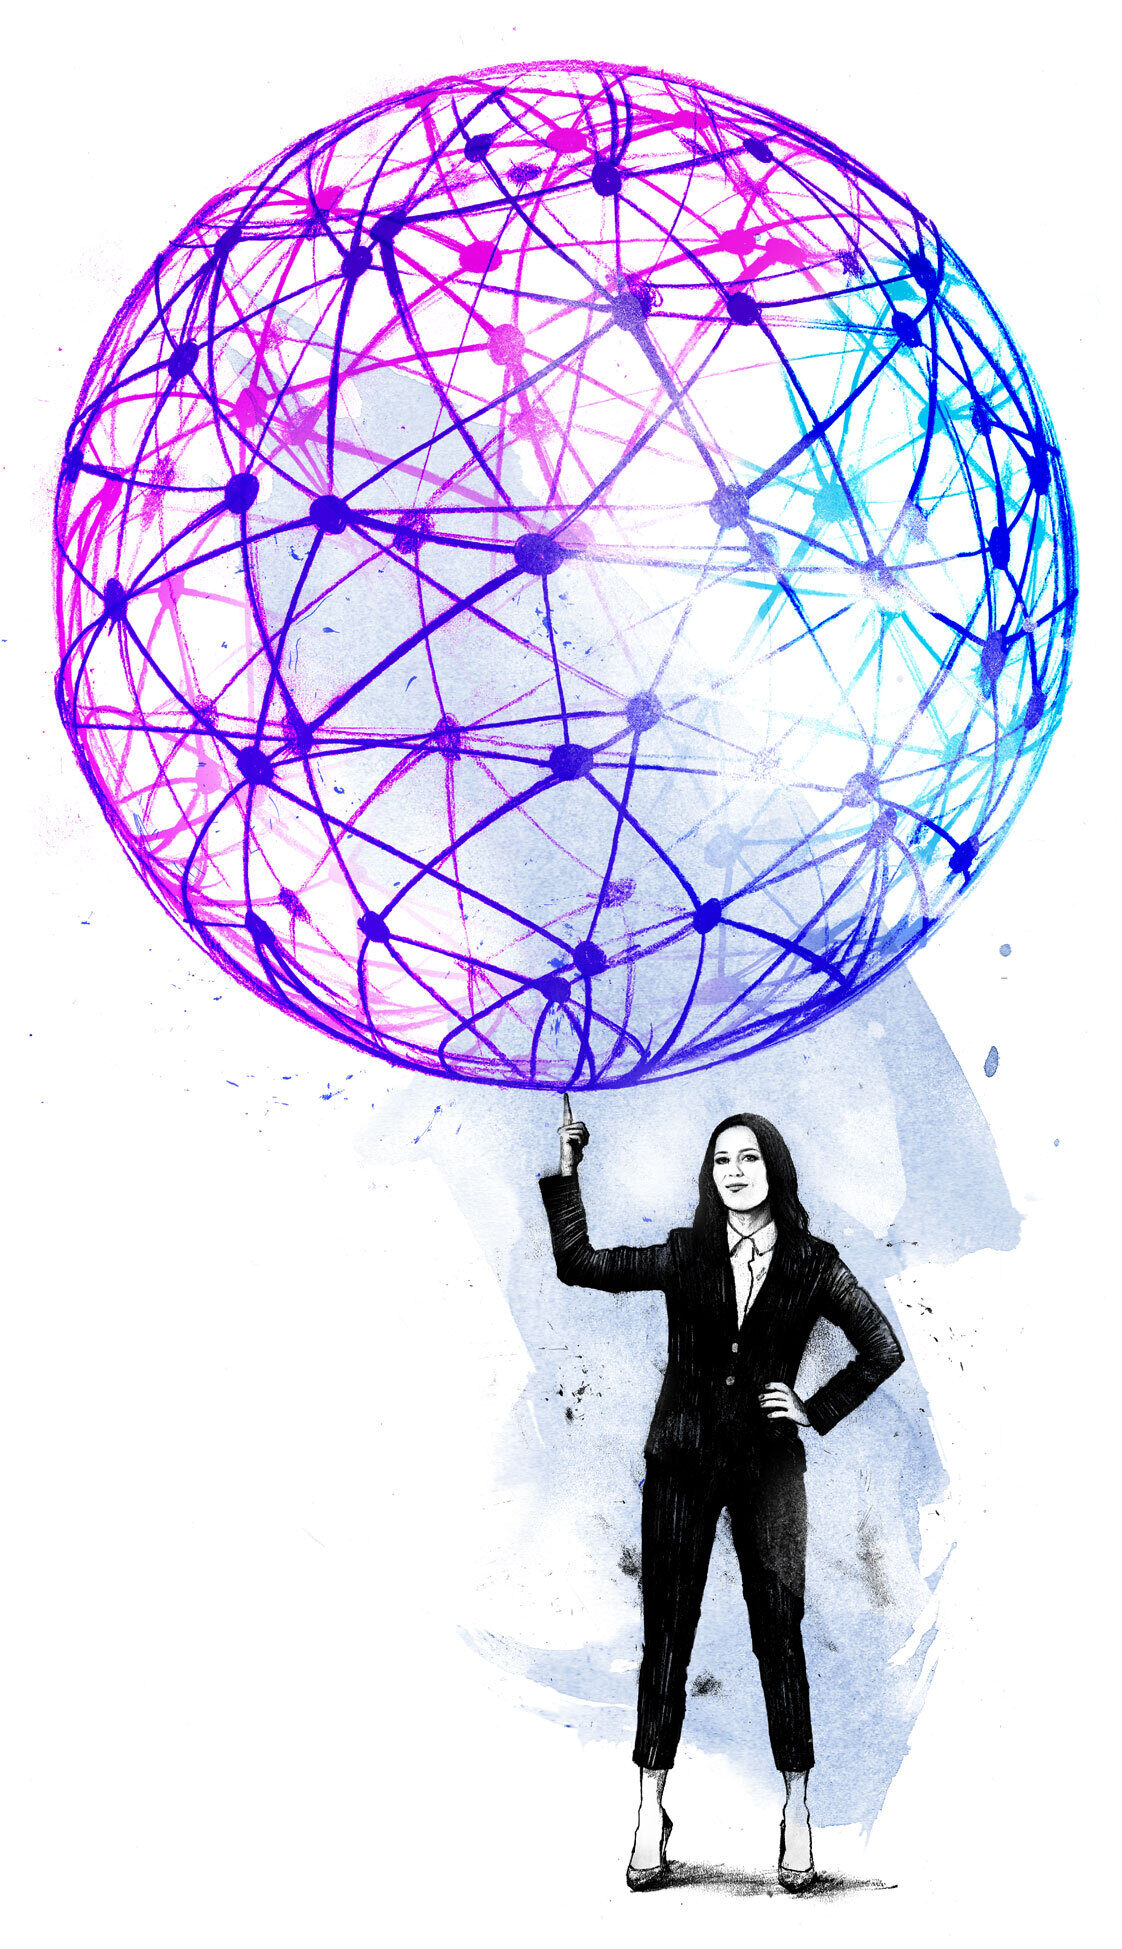 Women networking - Kornel Illustration | Kornel Stadler portfolio